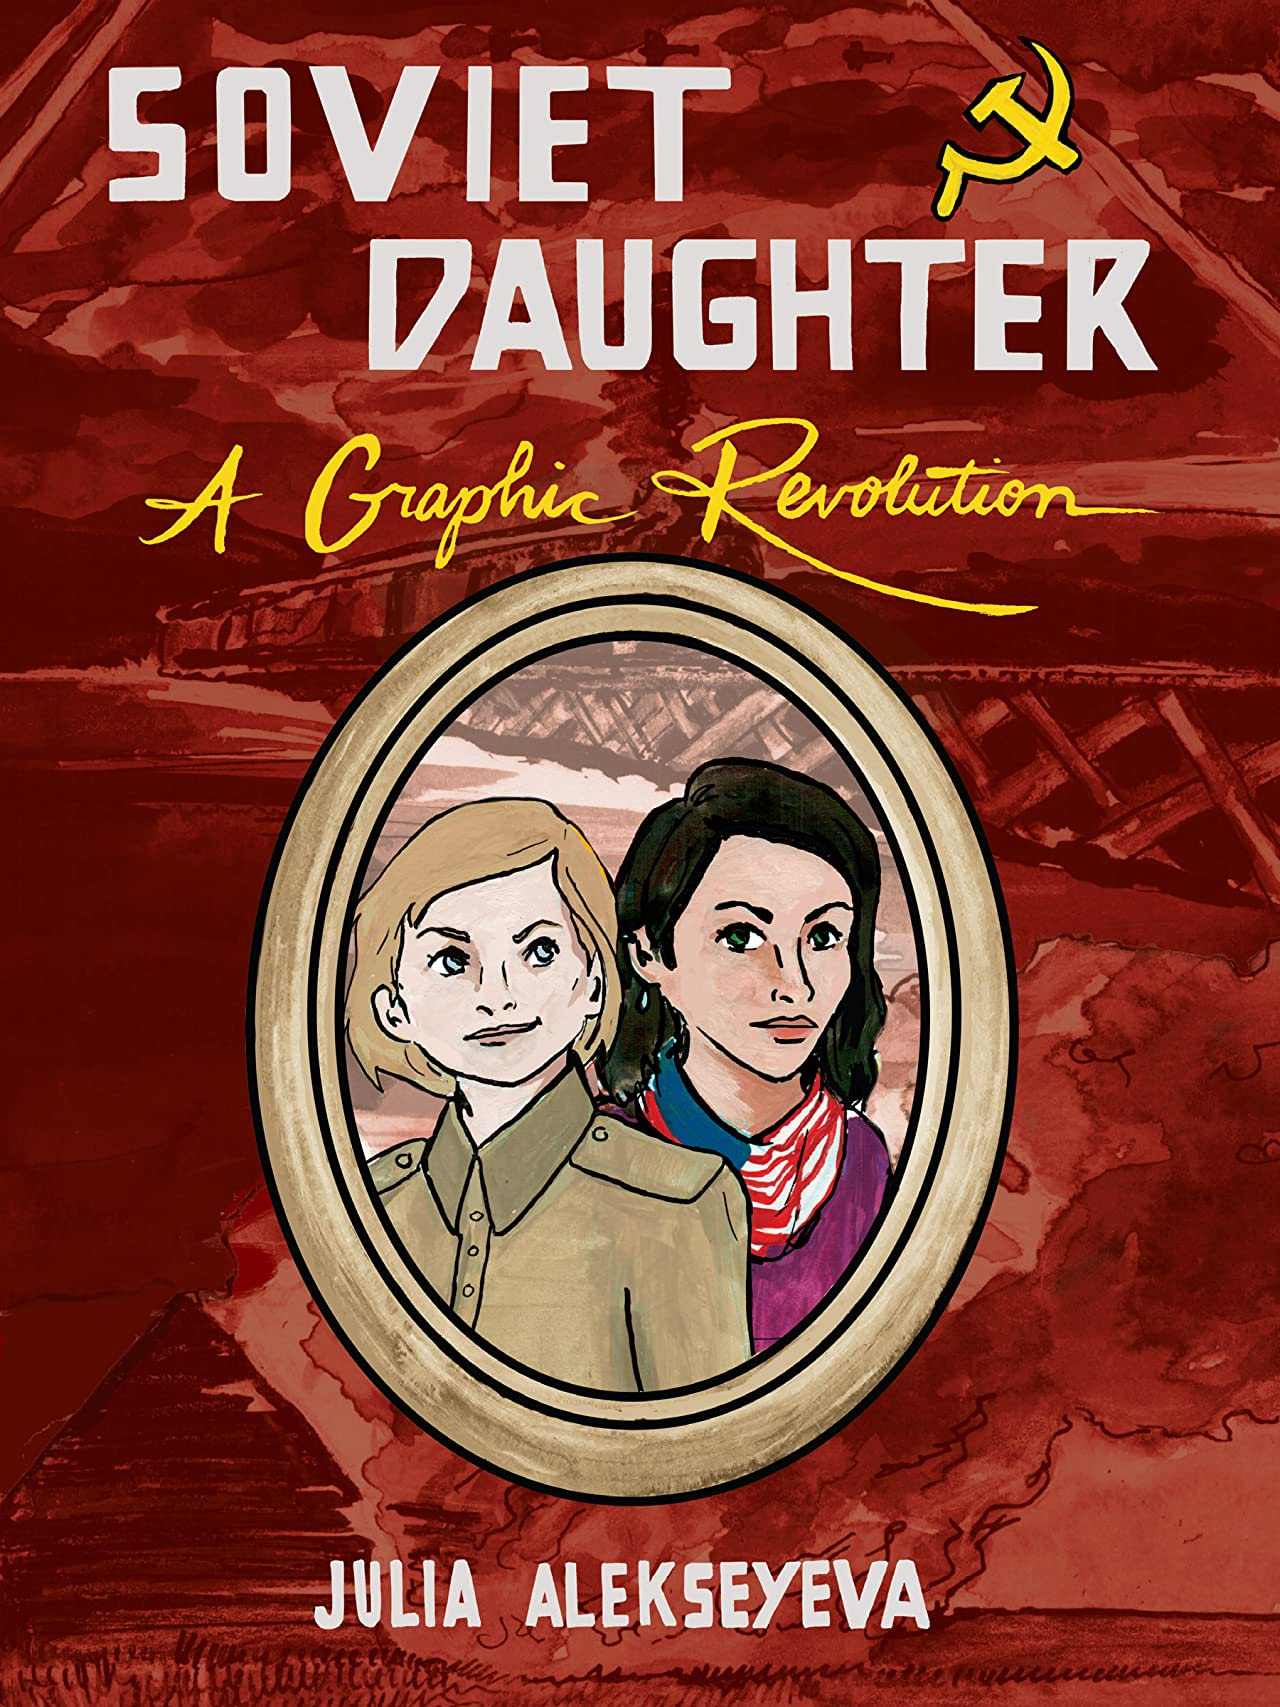 Soviet Daughter: A Graphic Revolution